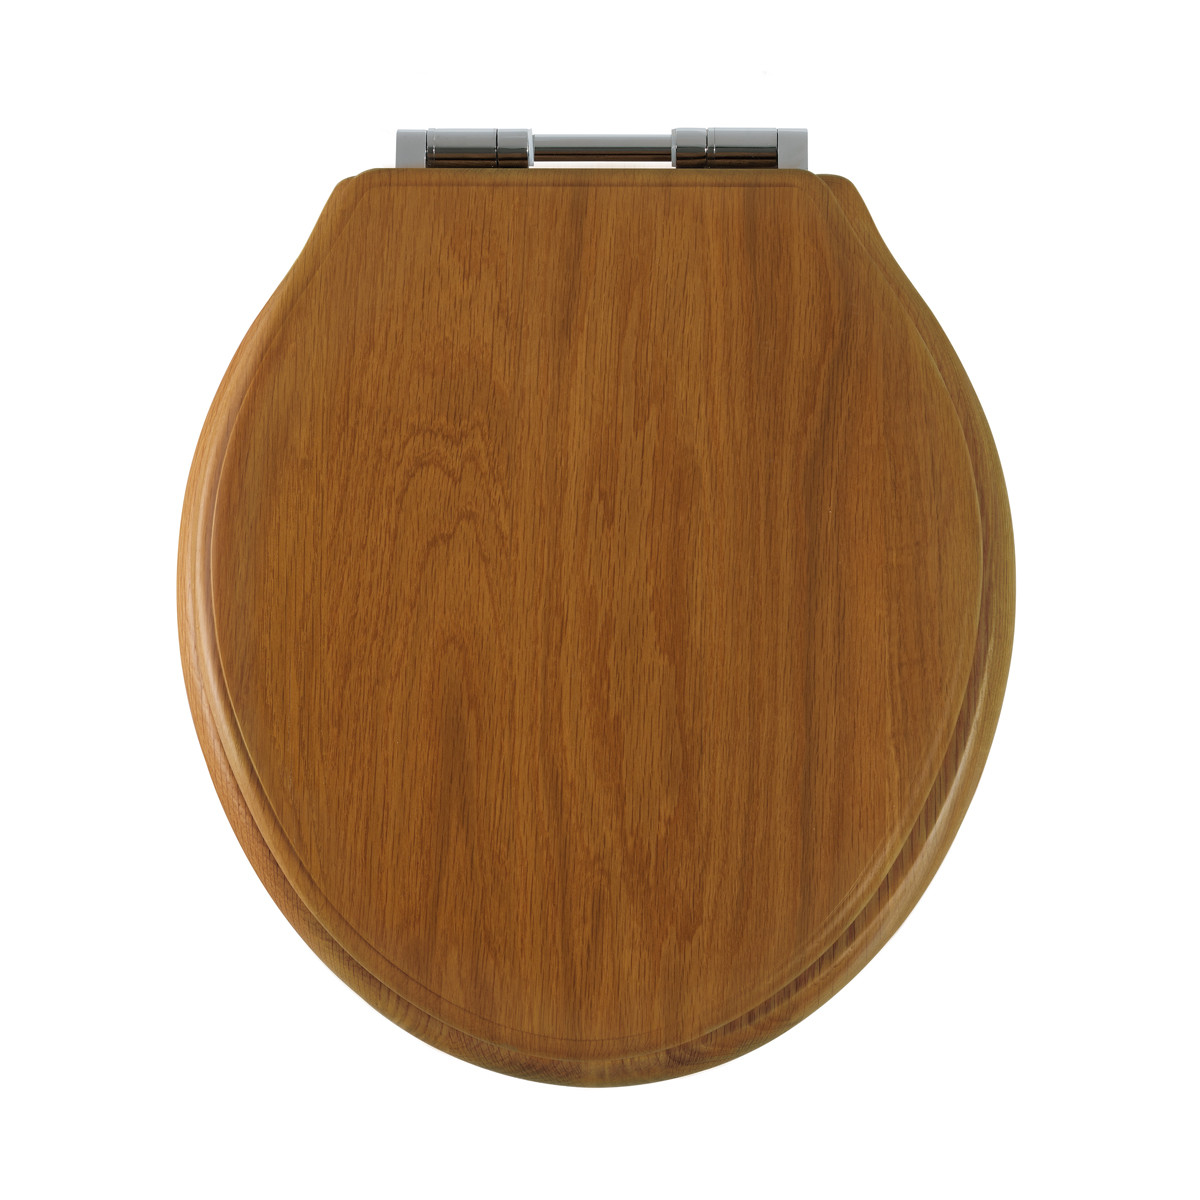 Roper Rhodes Greenwich Solid Wood Honey Oak Soft Close Toilet Seat